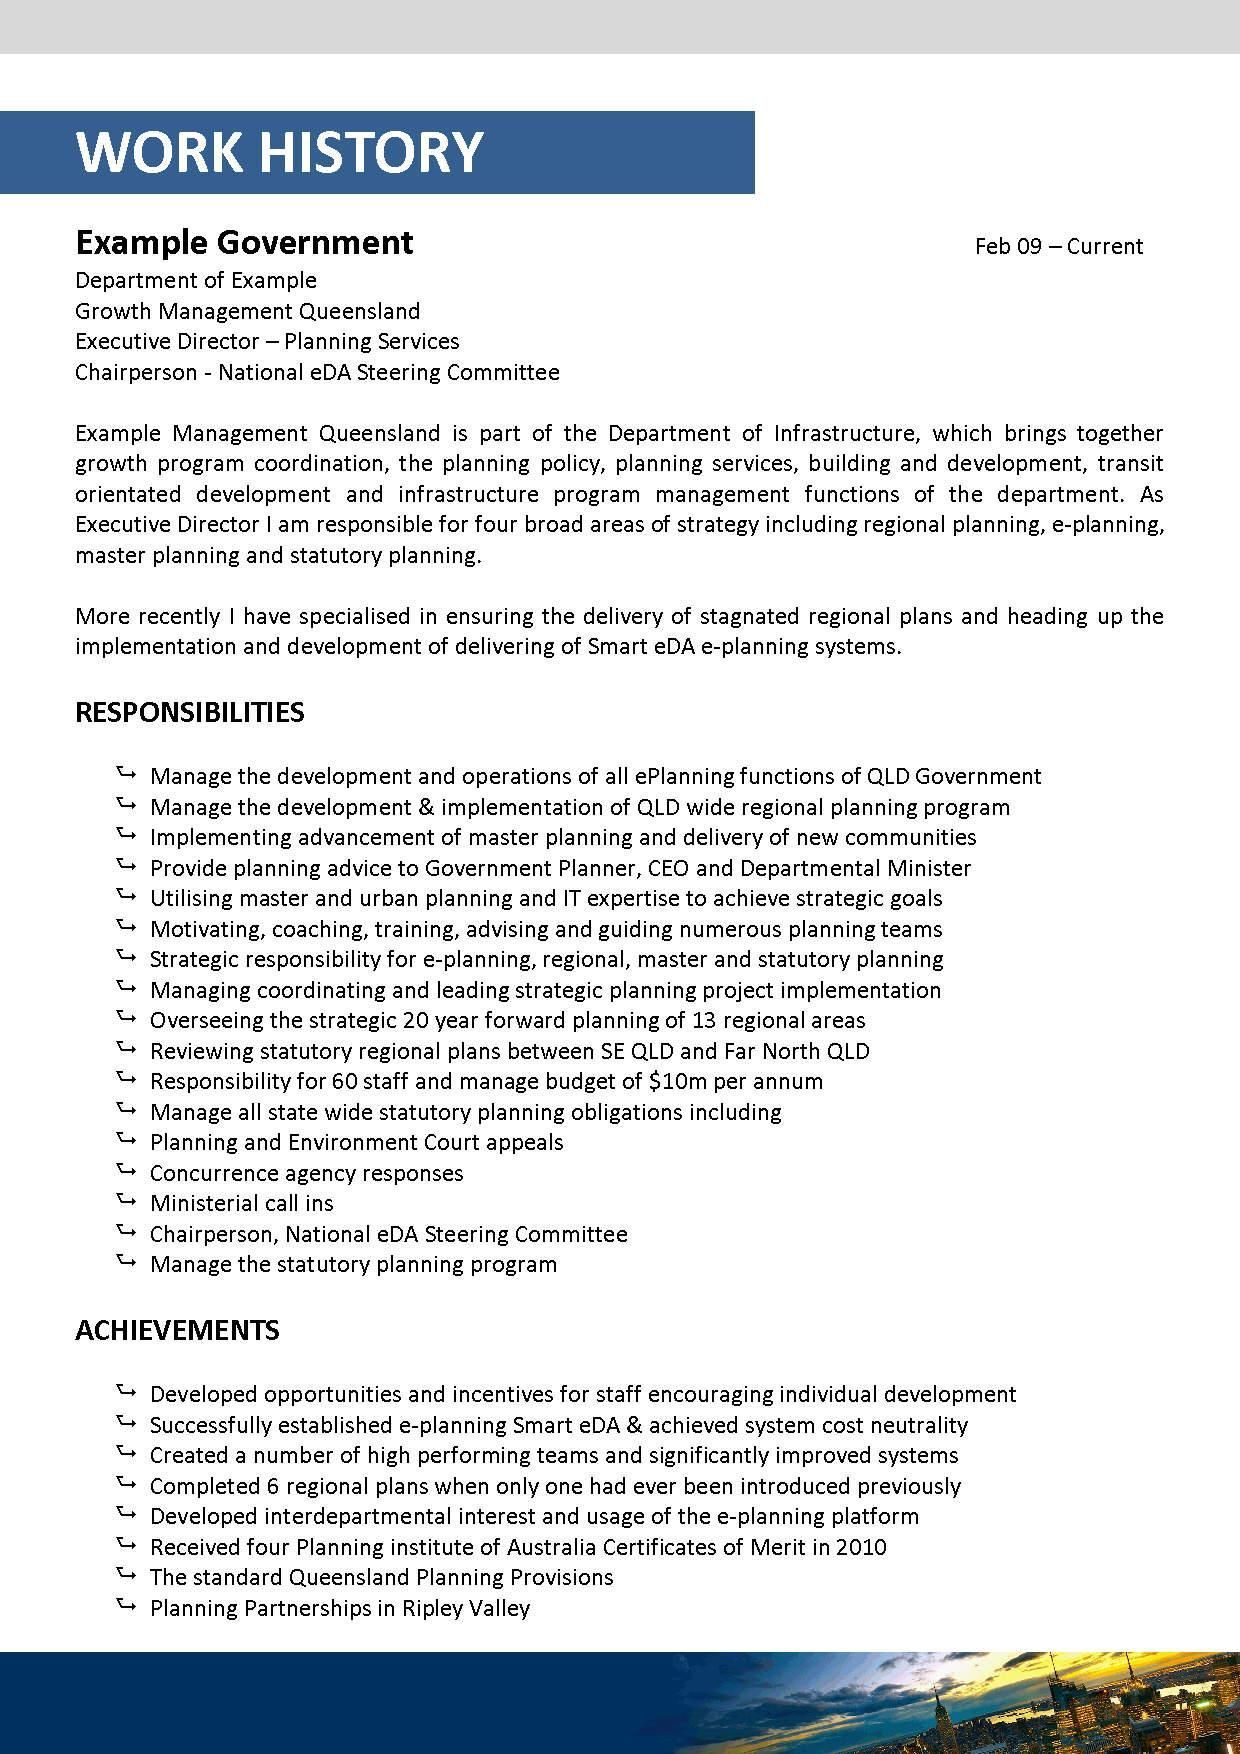 Attractive Cover Letter Proffesional Project Administrator Coordinator Resume  Objective Statement For Position